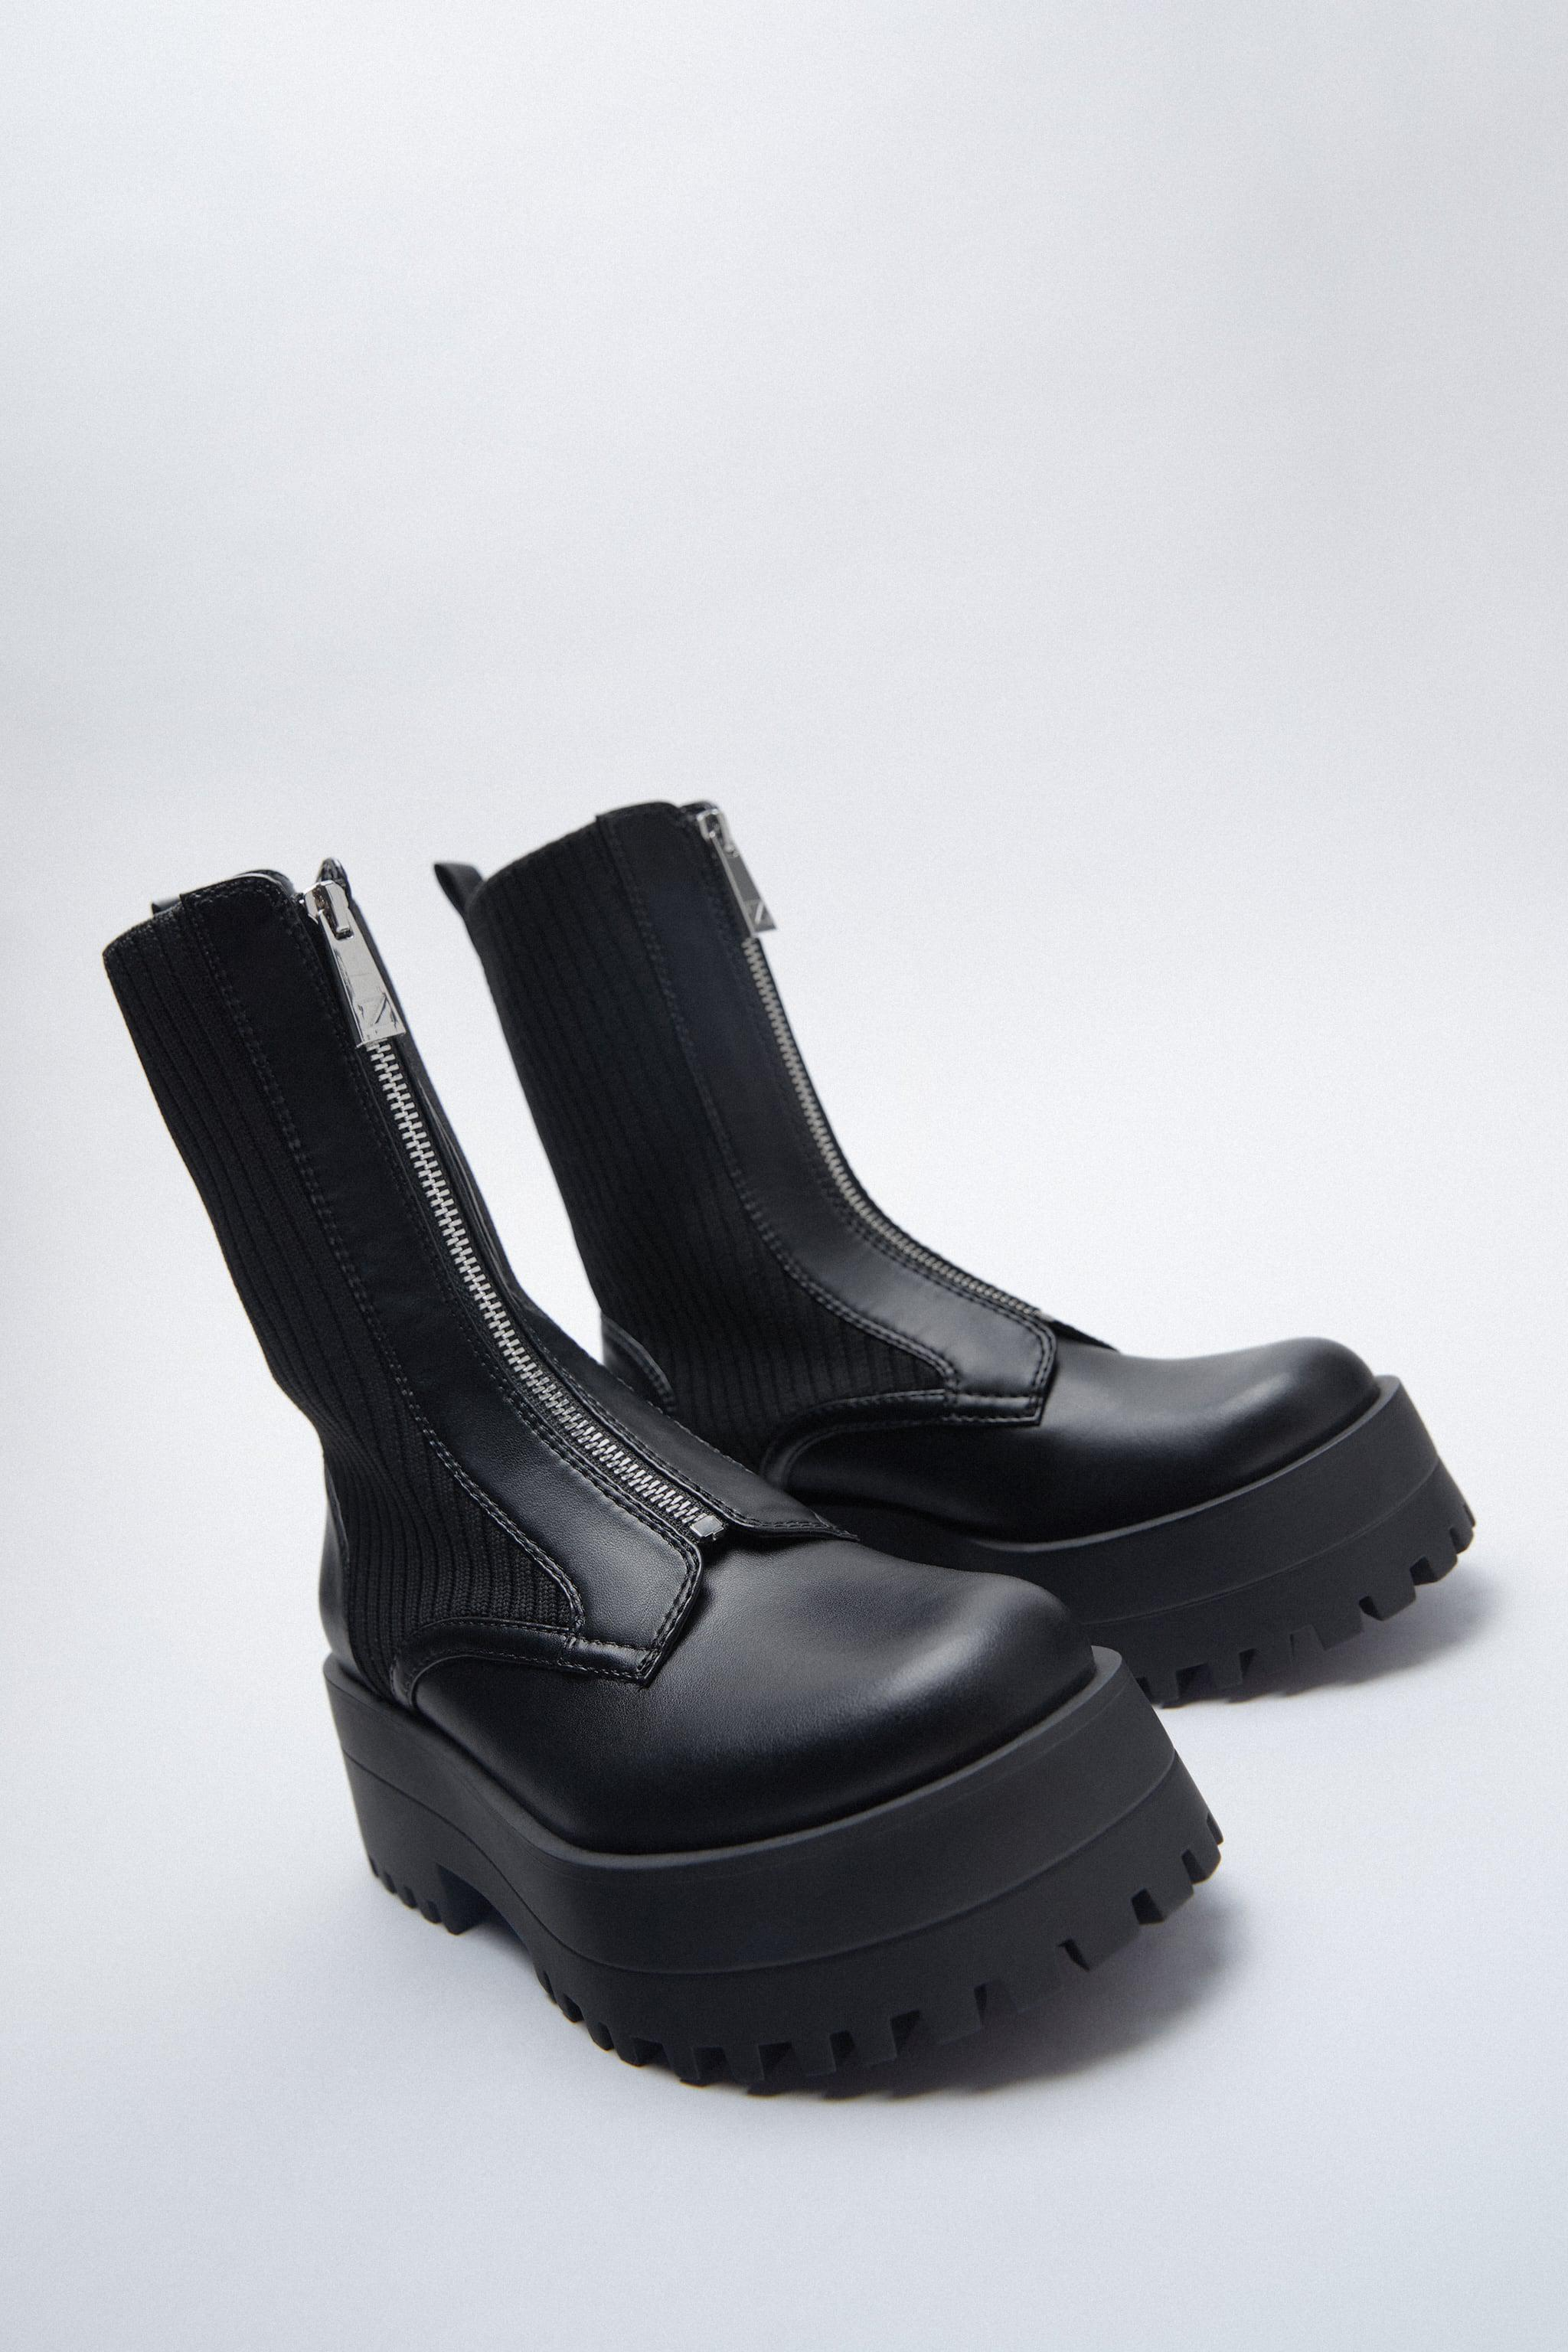 LOW HEELED SOCK-STYLE ZIP ANKLE BOOTS TRF 2